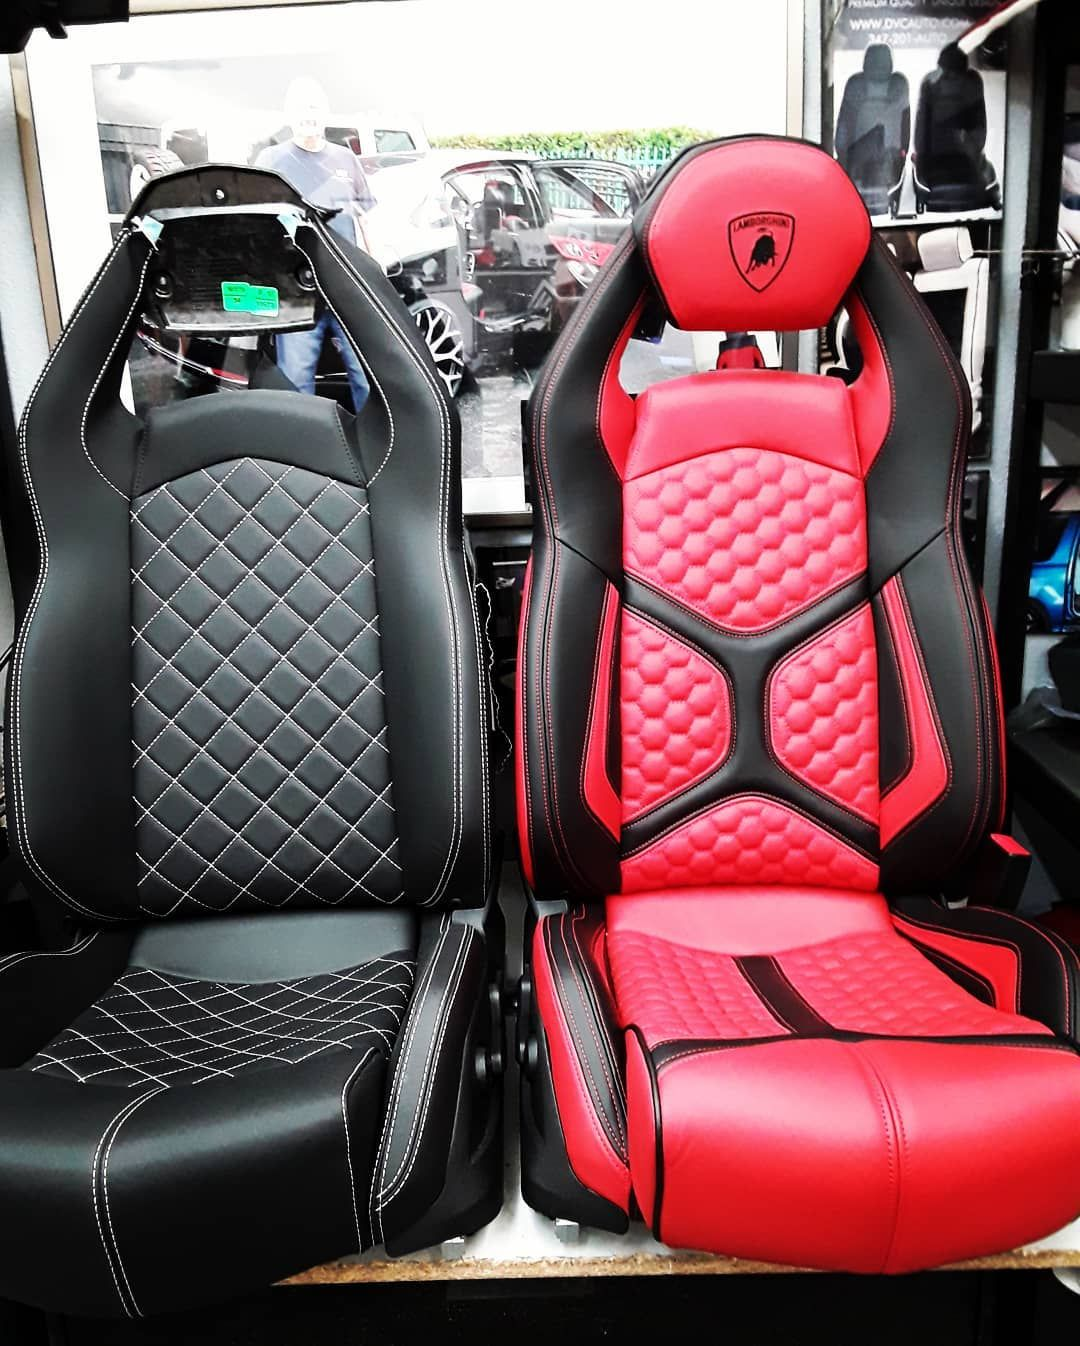 Davydovyinterior On Instagram The Auto Firm Lamborghini Aventador Seats Before And After Avorza Automotive Upholstery Car Seats Lamborghini Aventador